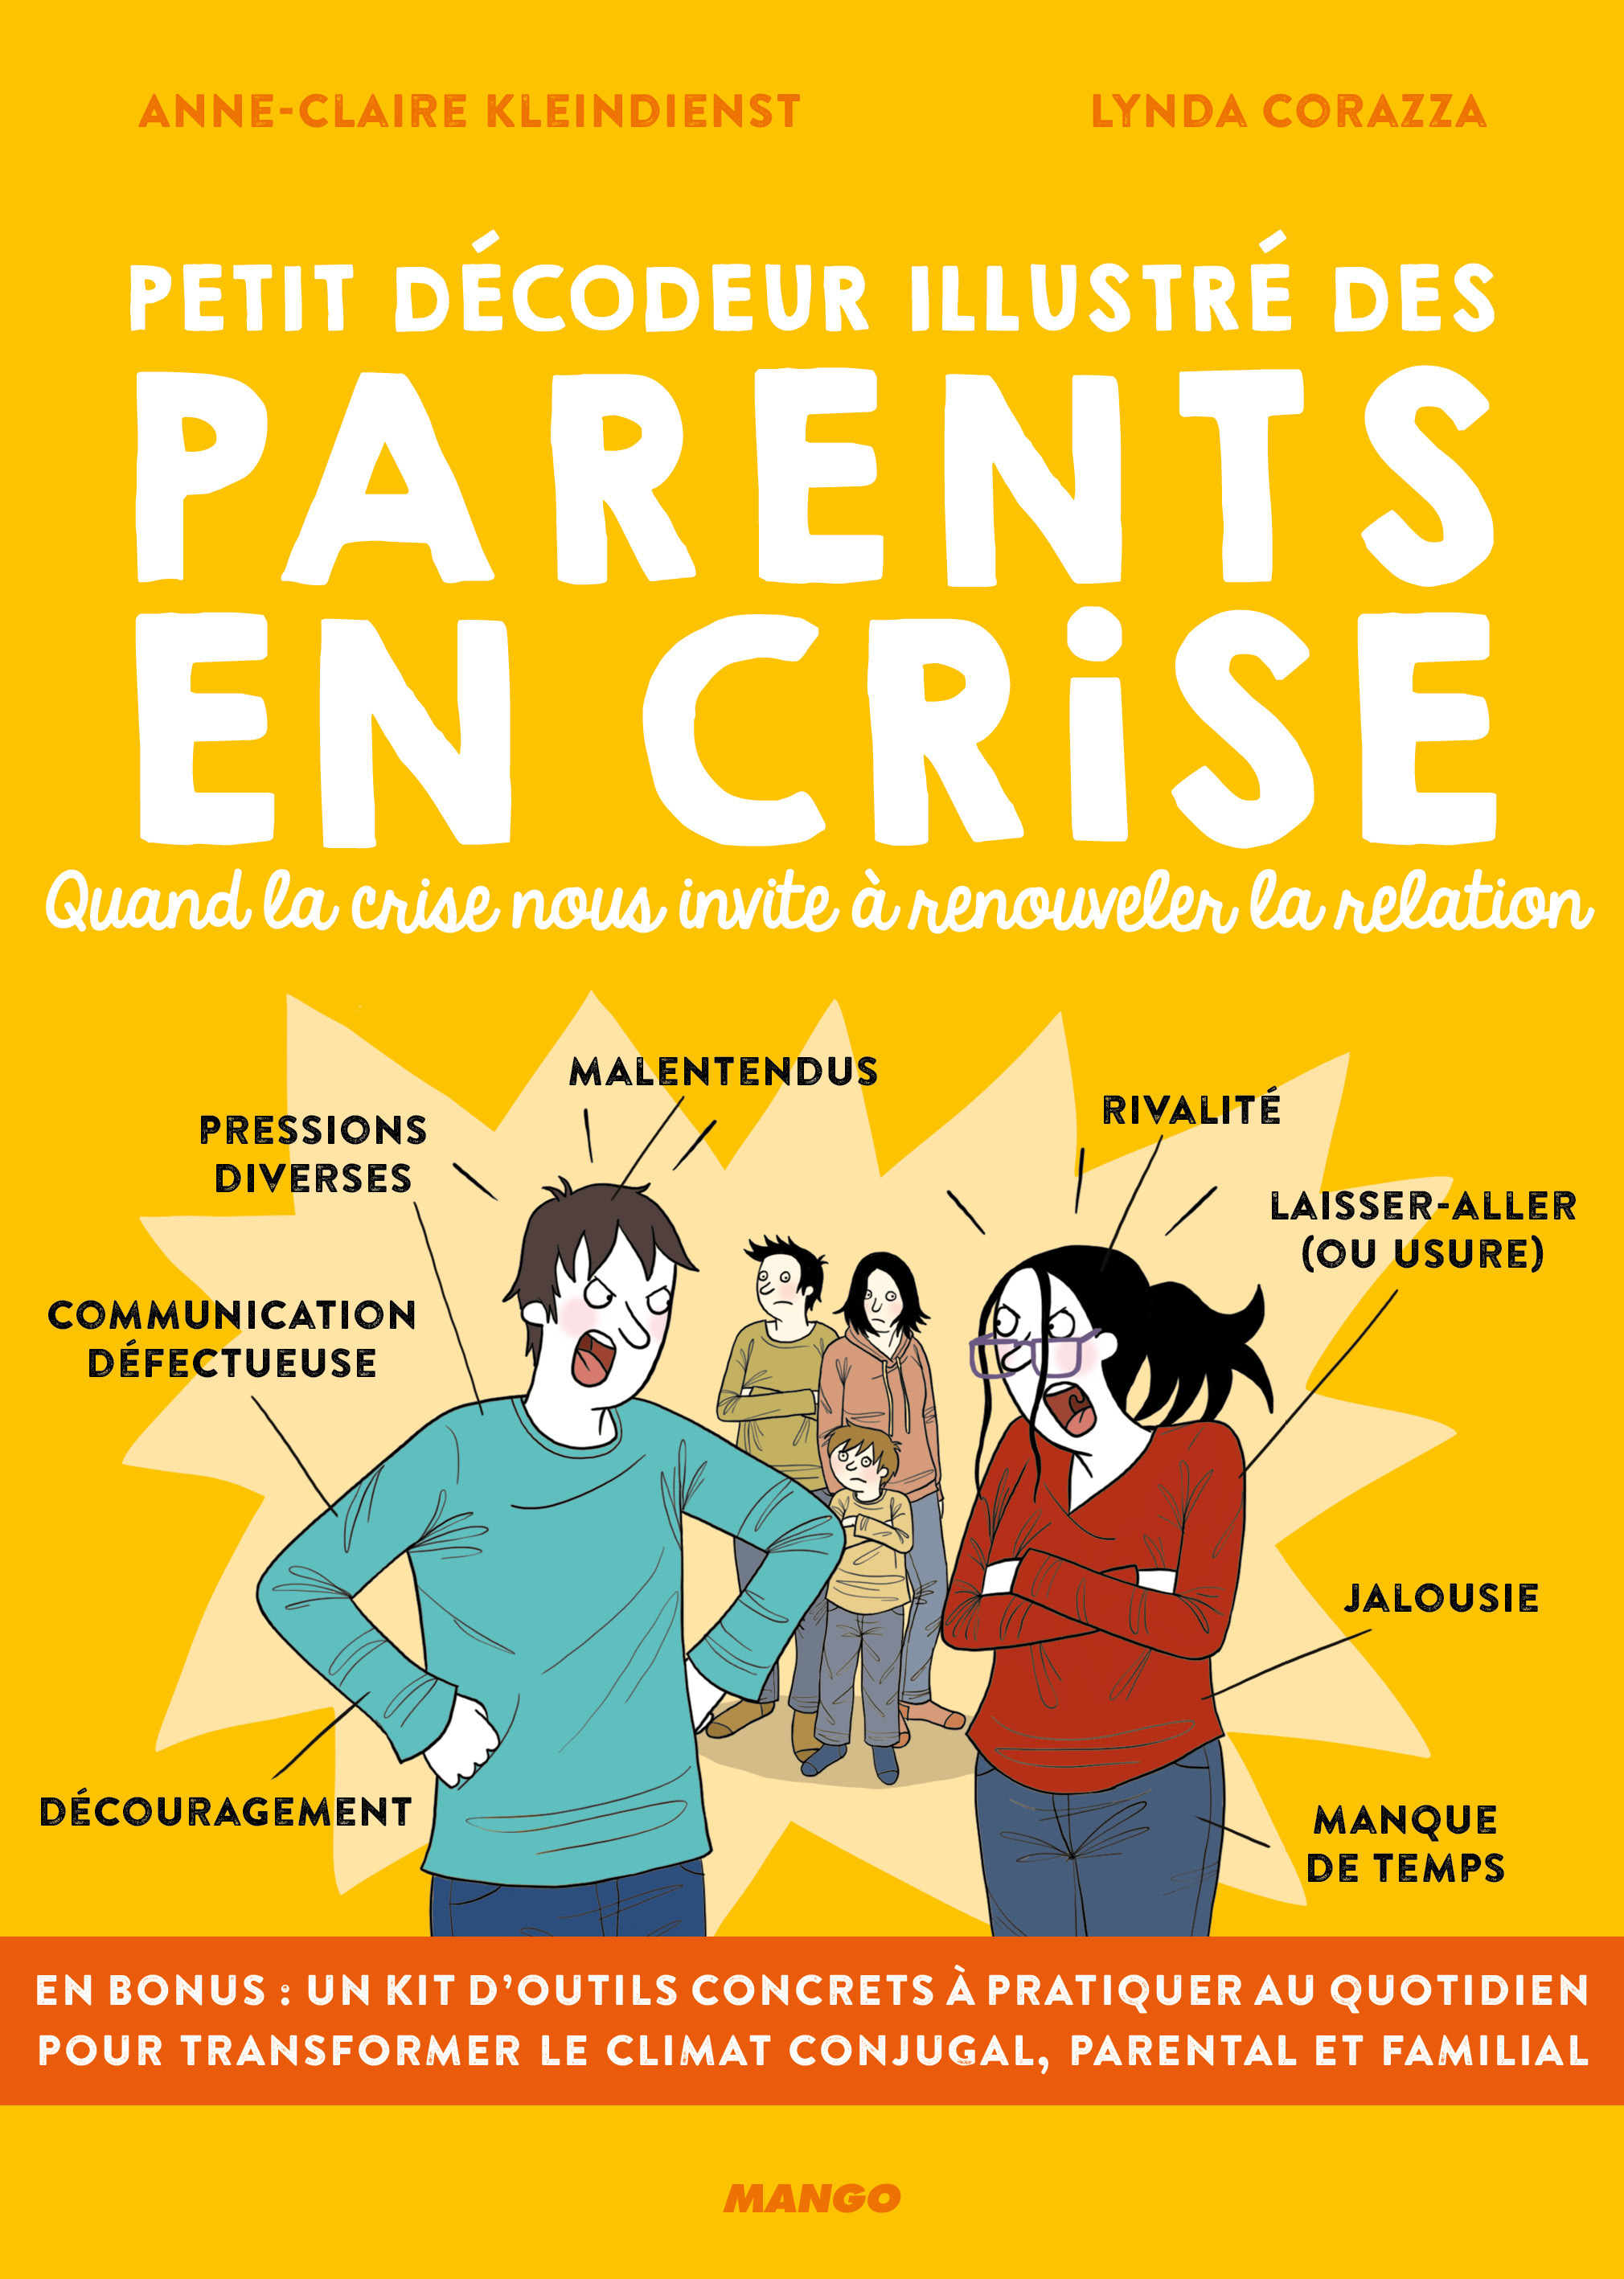 PETIT DECODEUR ILLUSTRE DES PARENTS EN CRISE